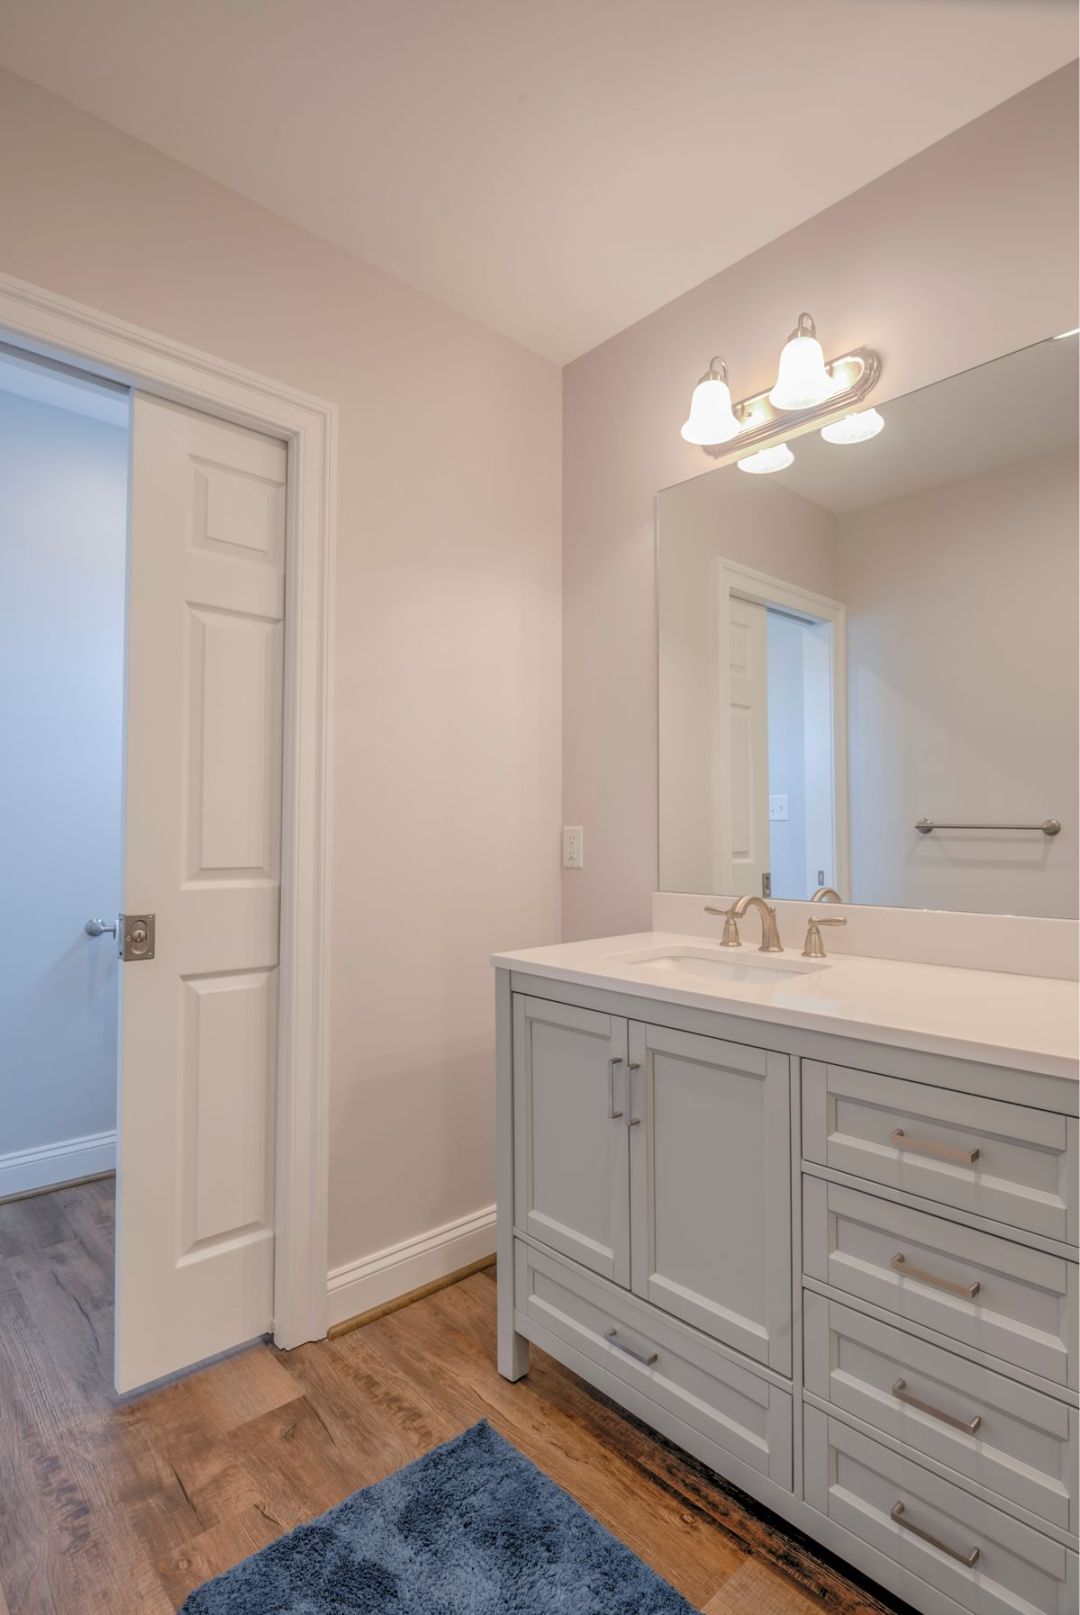 New Addition in October Glory, Ocean View DE - Bathroom with White Vanity Top